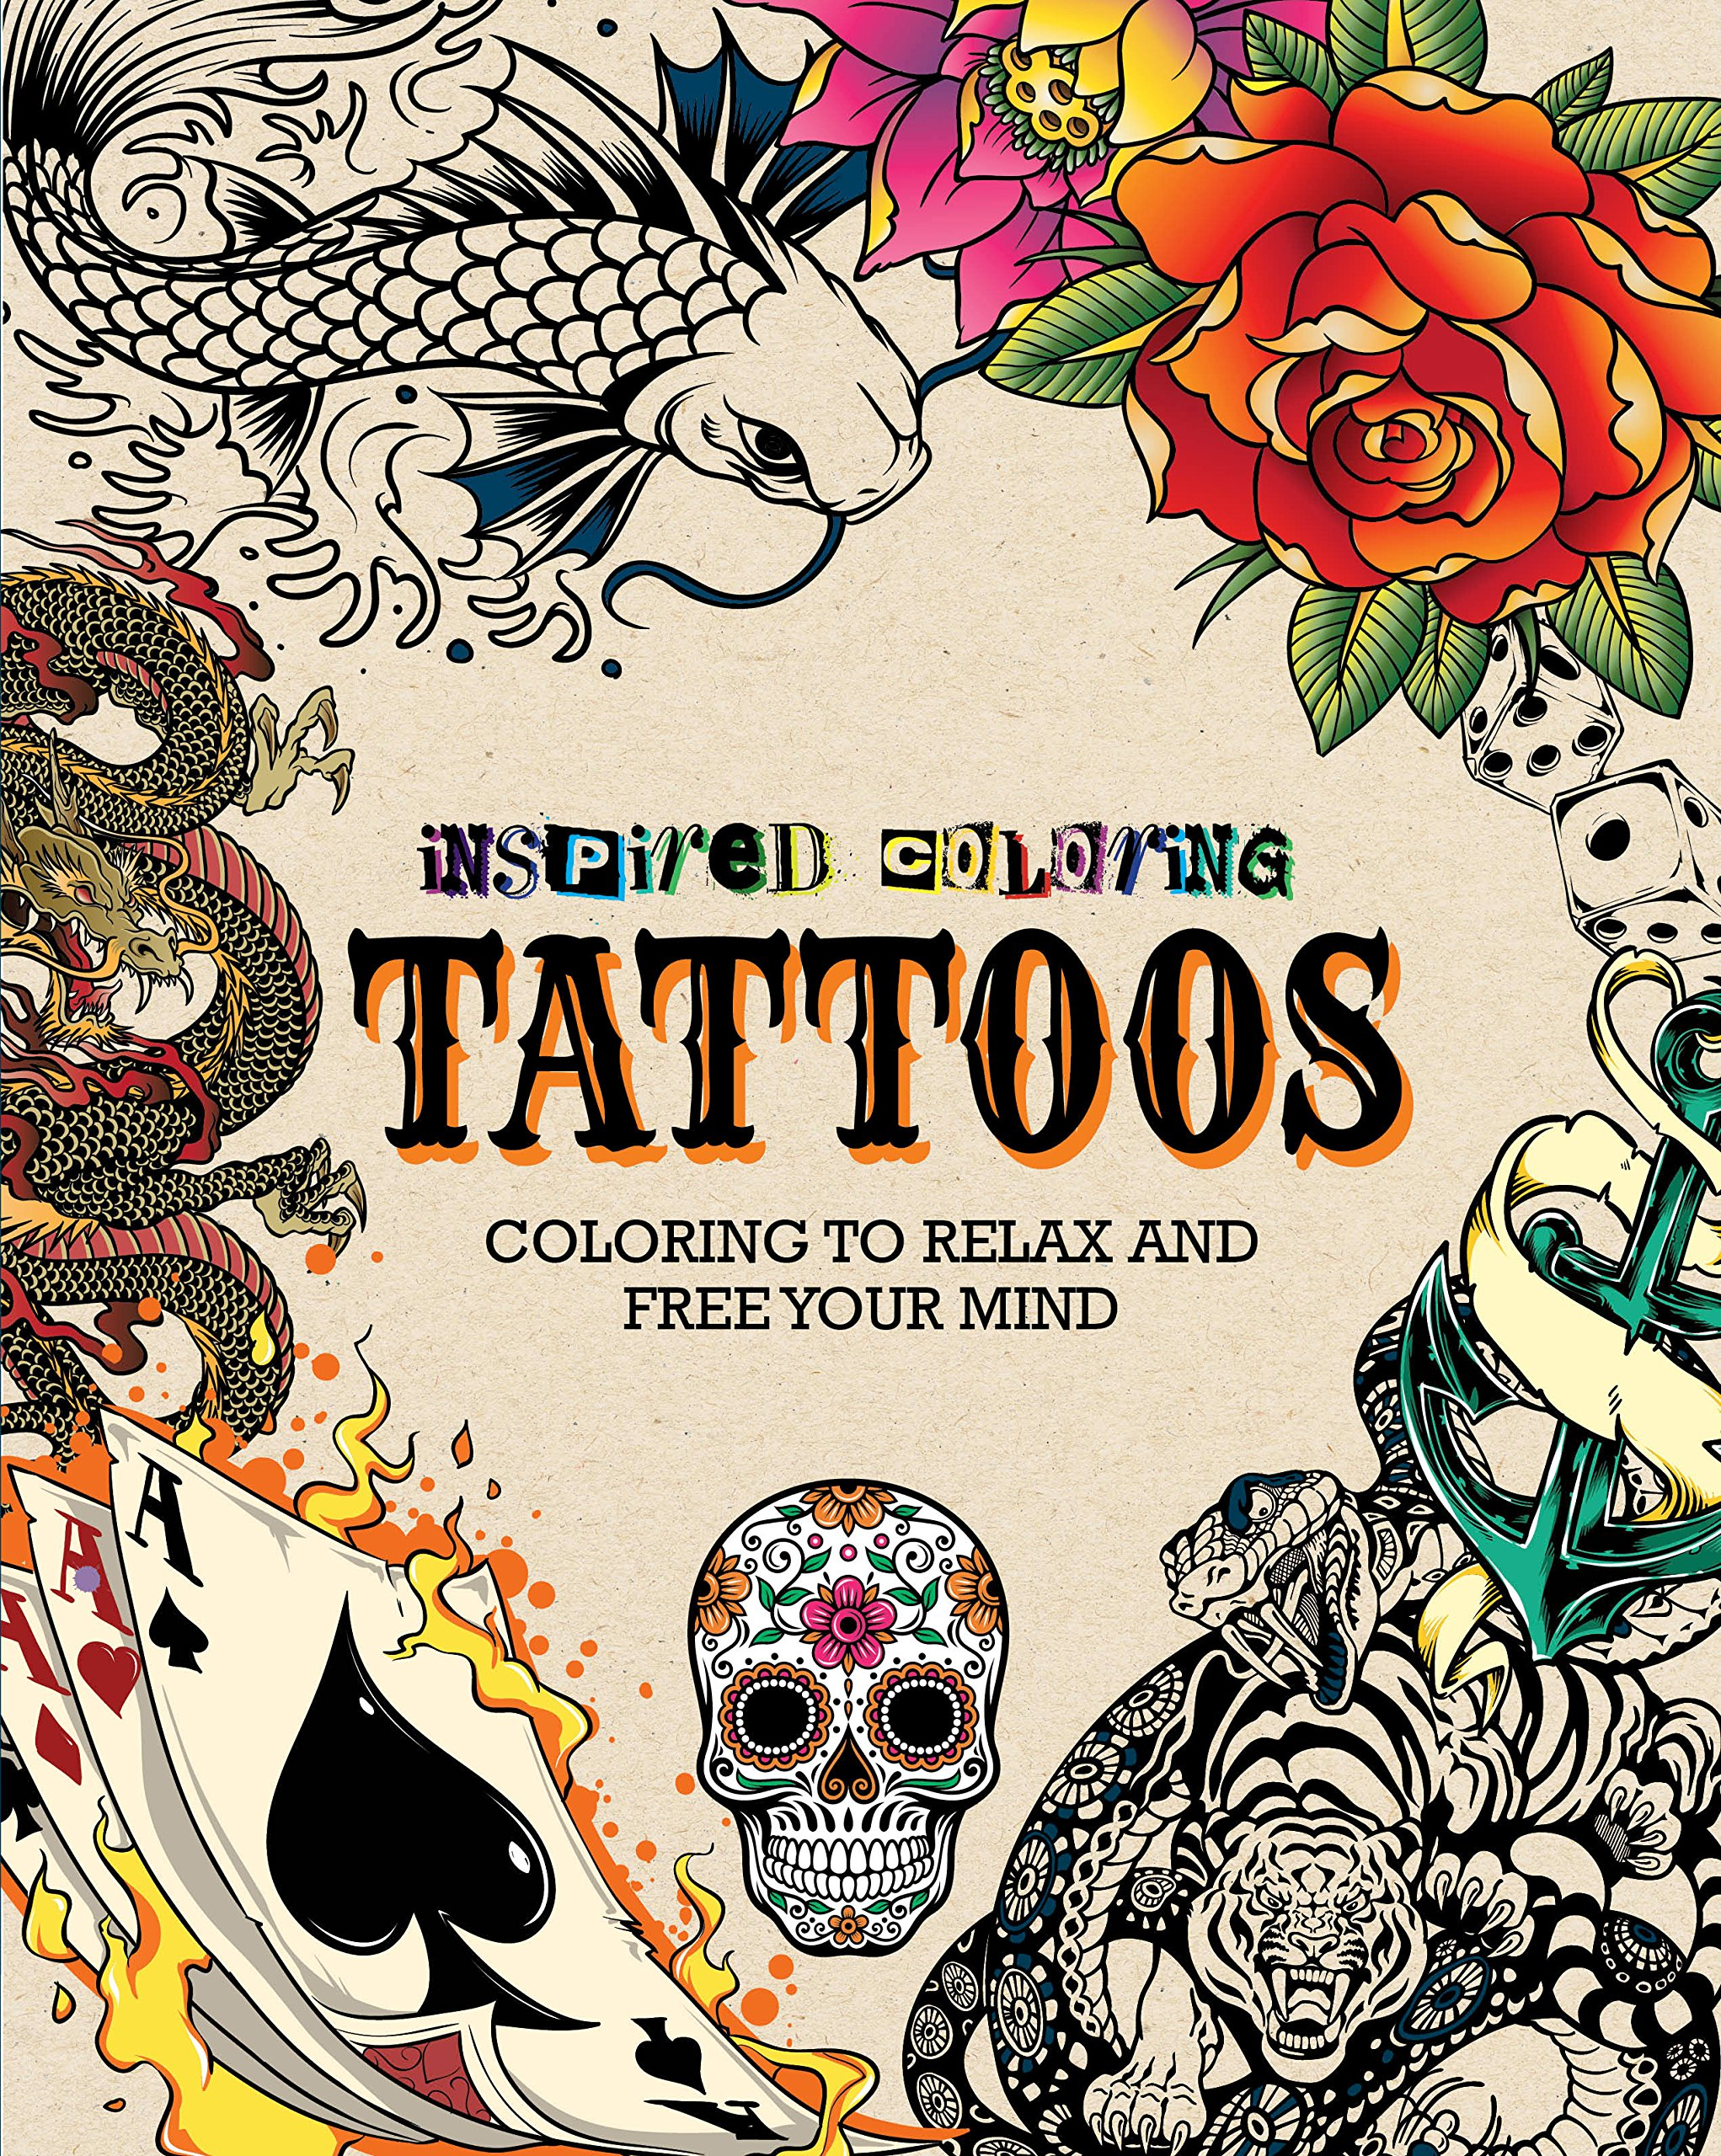 tattoos inspired coloring parragon books 9781472392640 amazoncom books - Tattoo Coloring Book